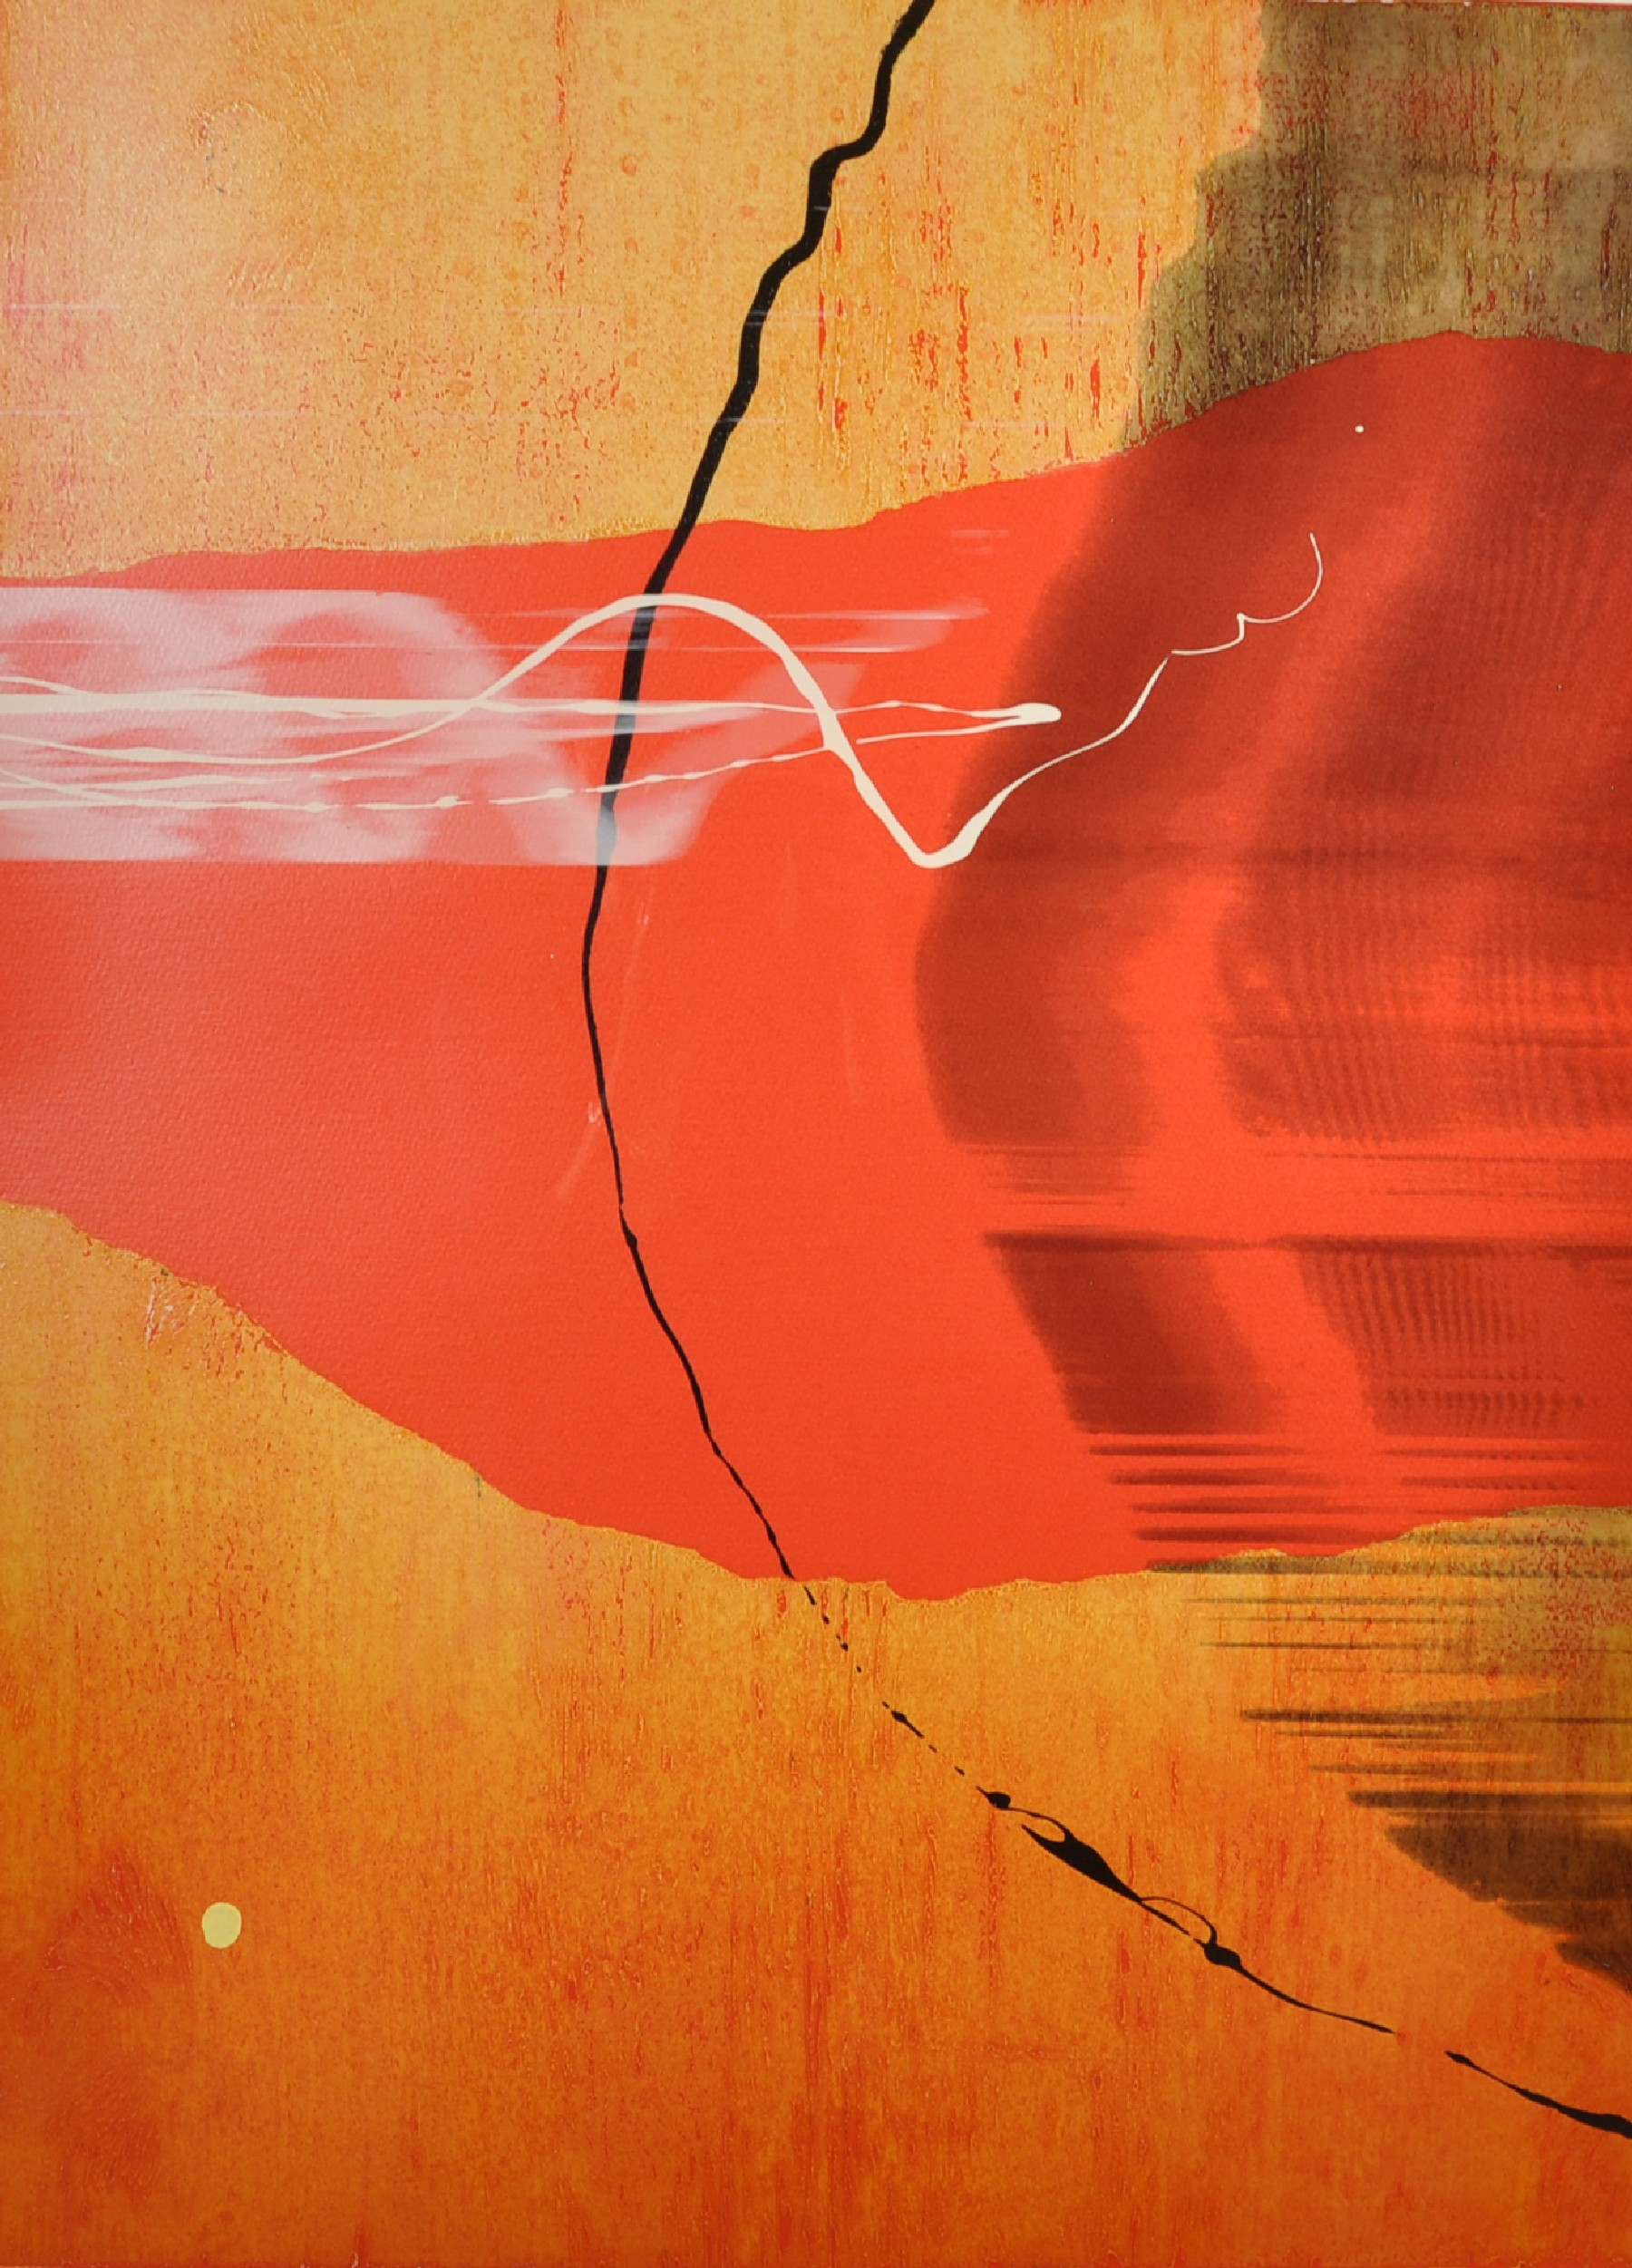 """Neil Canning (1960- ) British. """"Voyage I"""", Screenprint, Signed, Inscribed, Dated '00, and Numbered"""